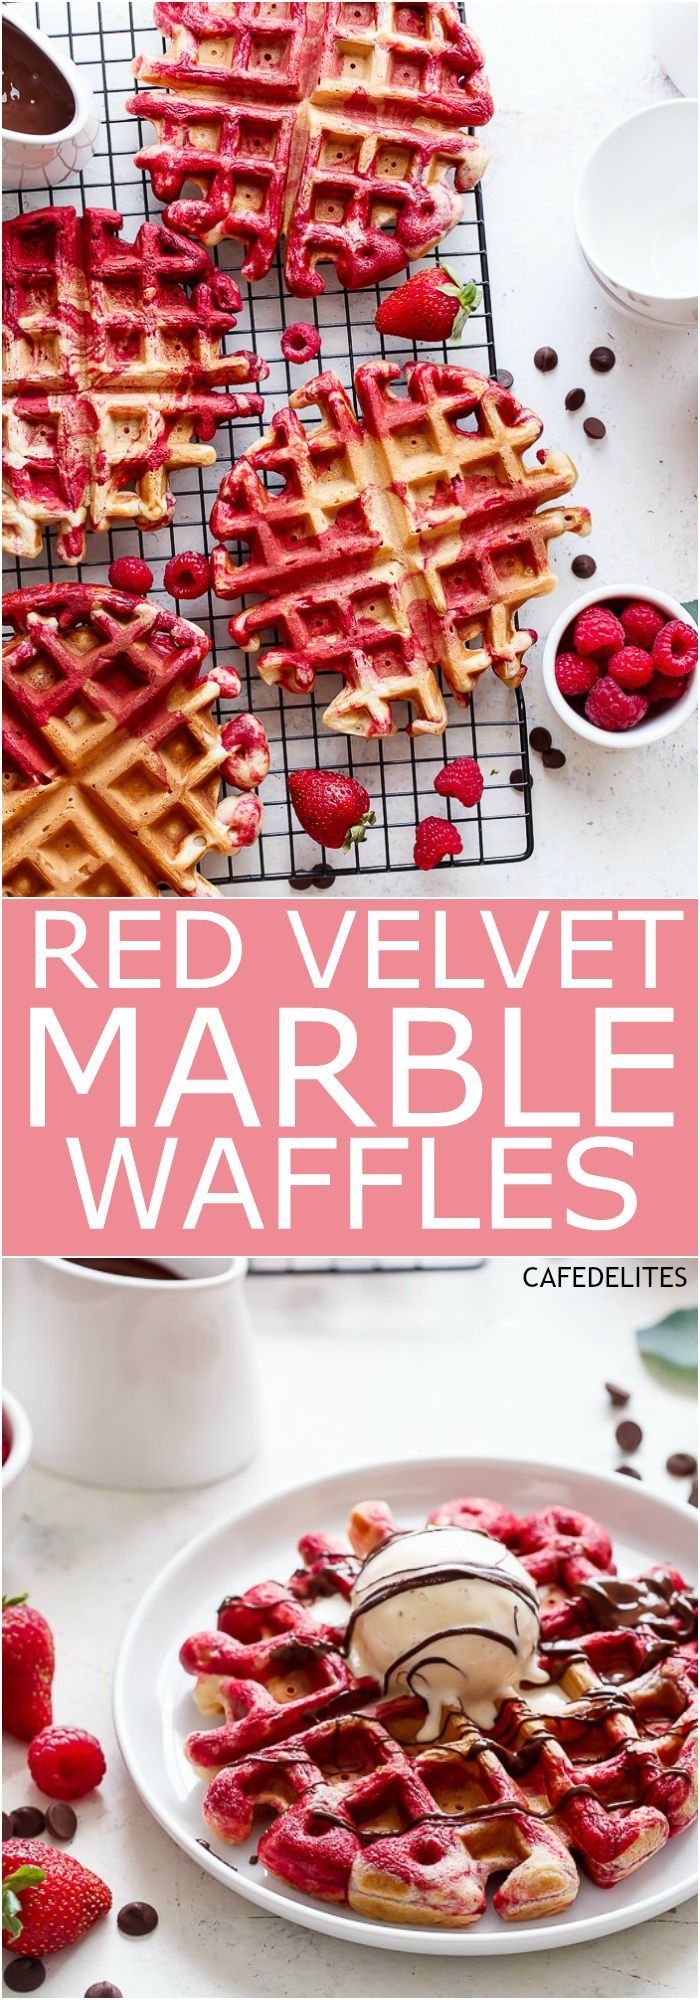 Red Velvet Marbled Waffles (or Valentine's Day Waffles) made healthier with…